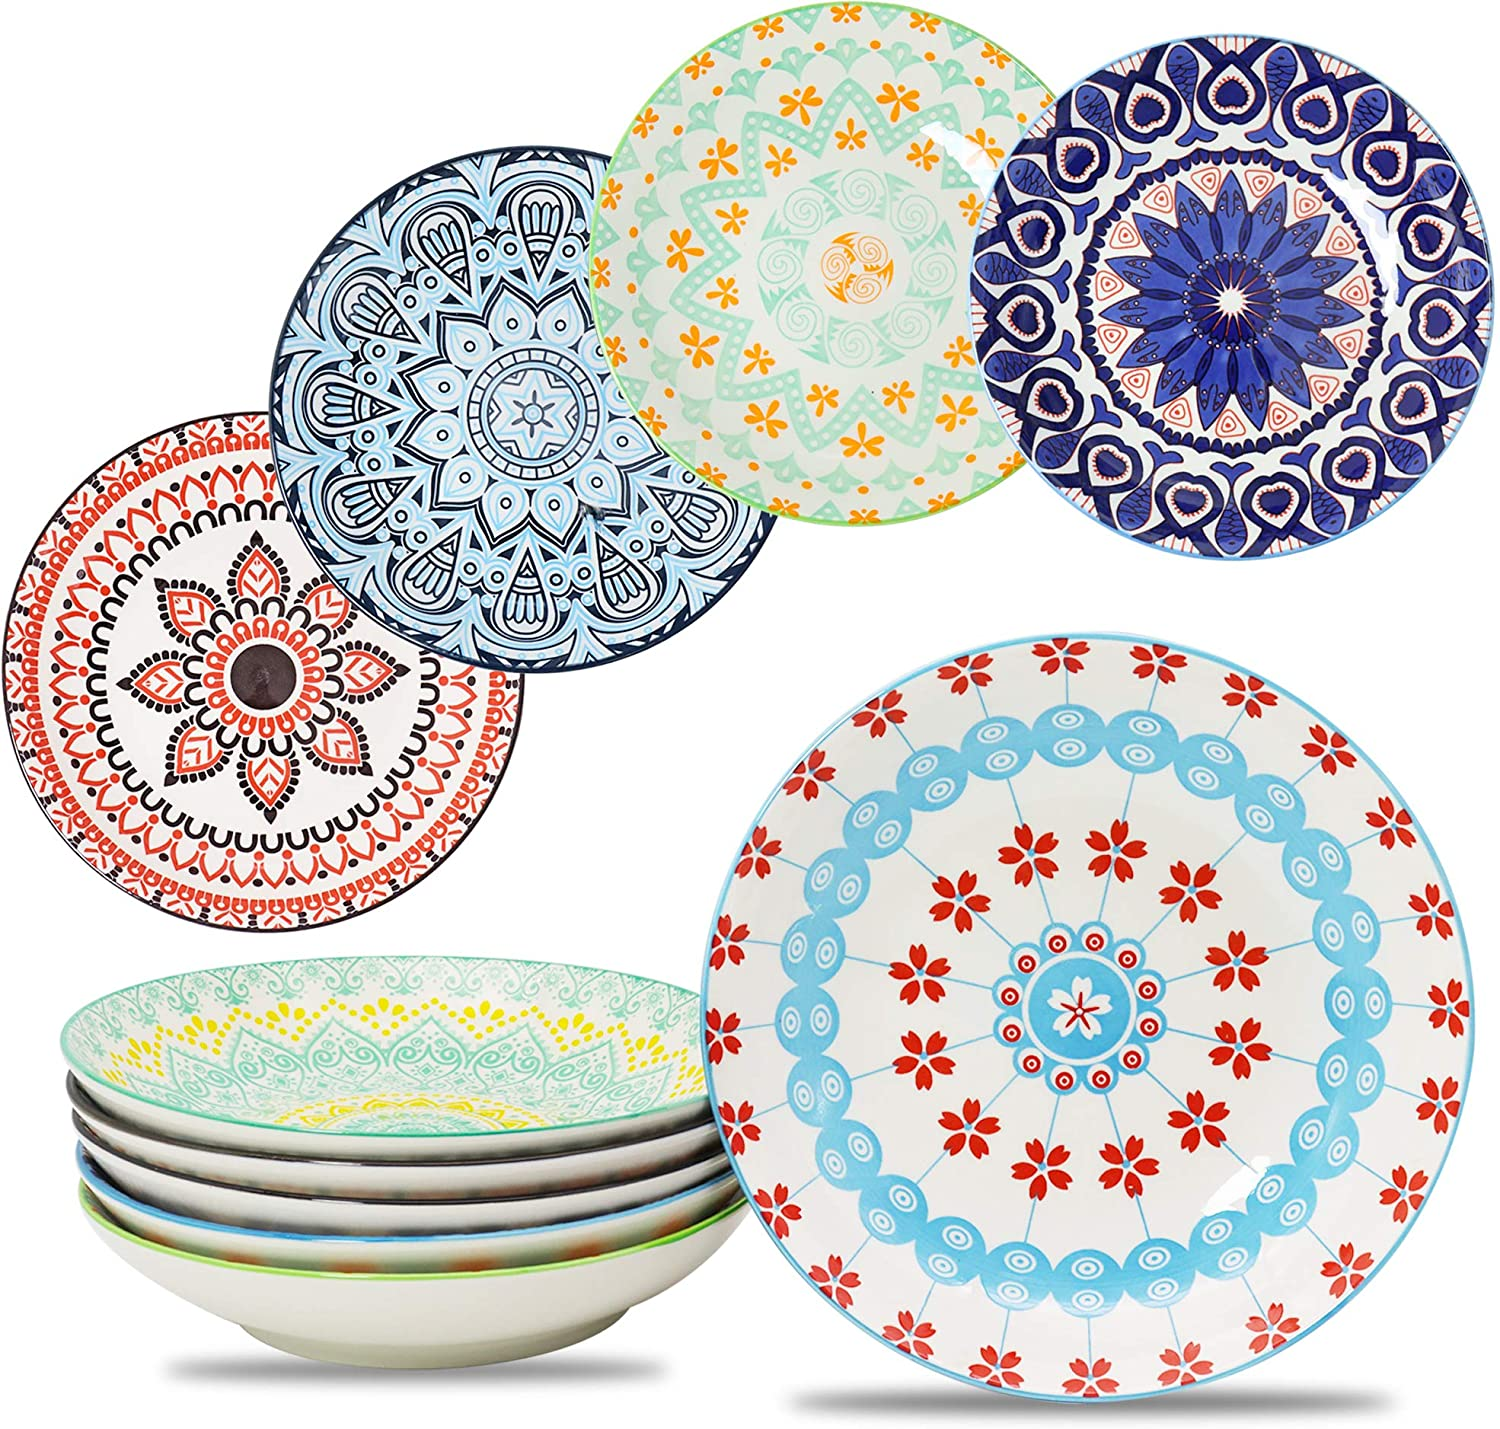 Farielyn-X Large Salad Pasta Bowls Set of 6, Wide and Shallow Porcelain Dinner Bowl/Dishes, 27 oz Assorted Patterns Serving Plates and Bowls for Pasta, Salad, Cereal, Soup, Microwave & Dishwasher Safe